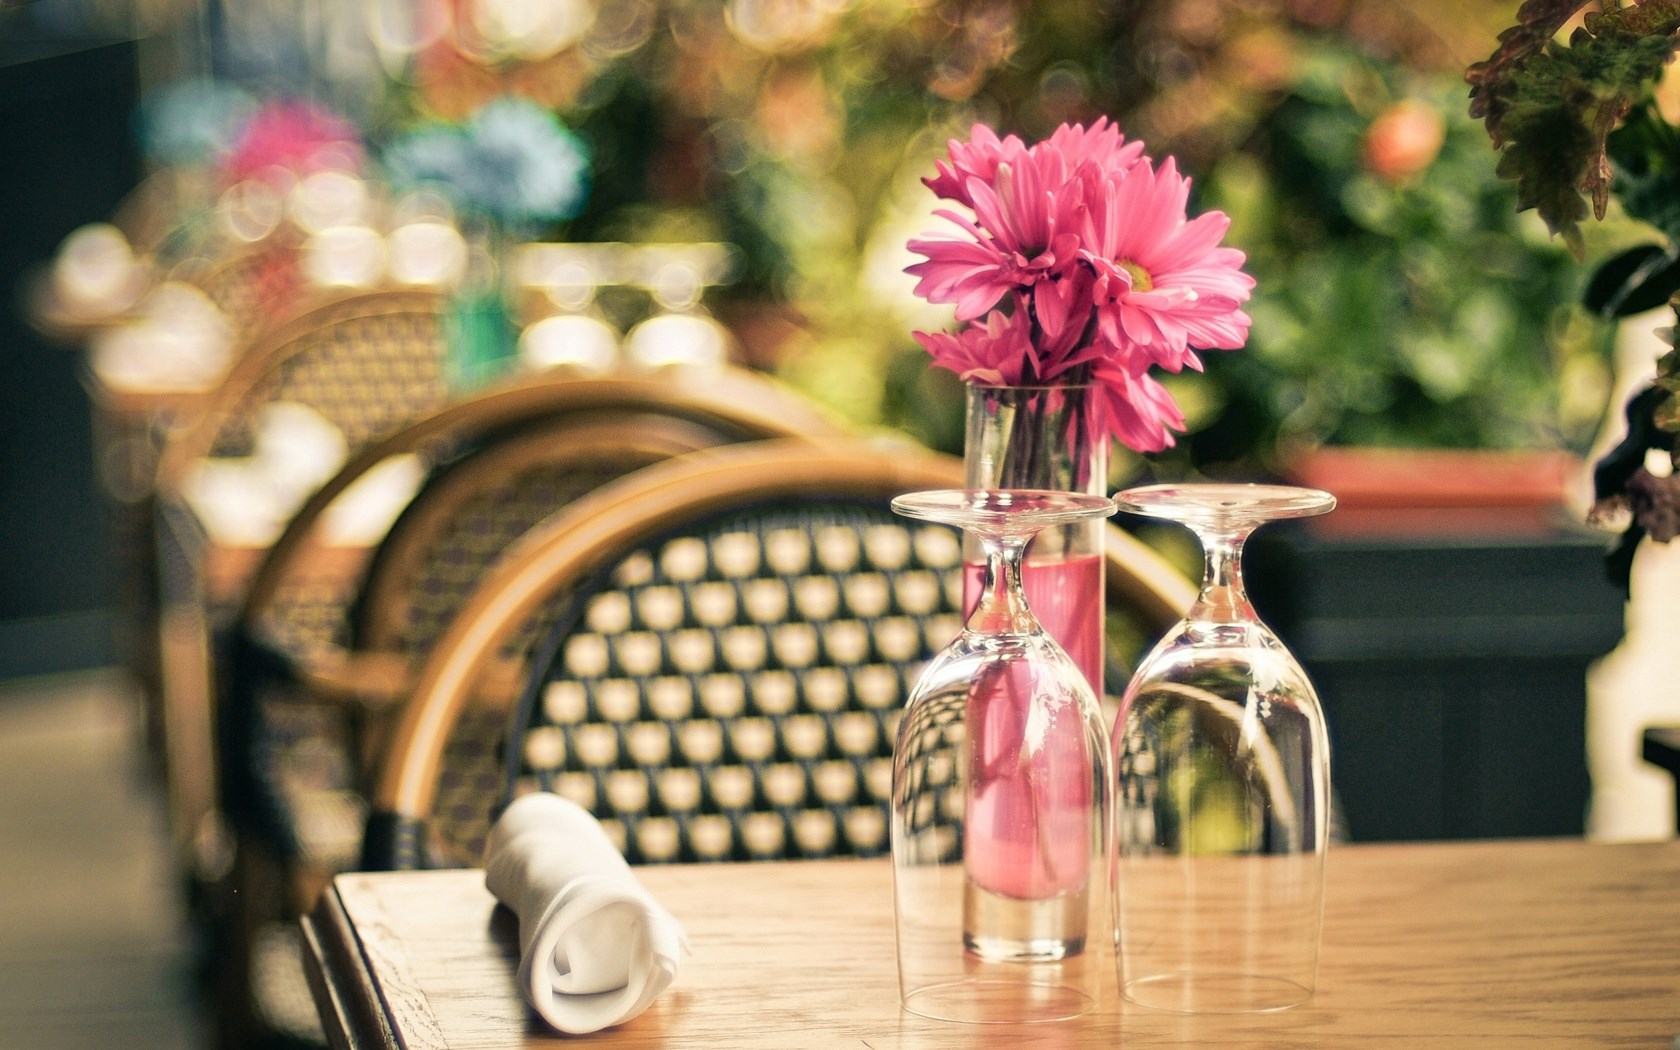 Cafe Table Flowers Pink Vase